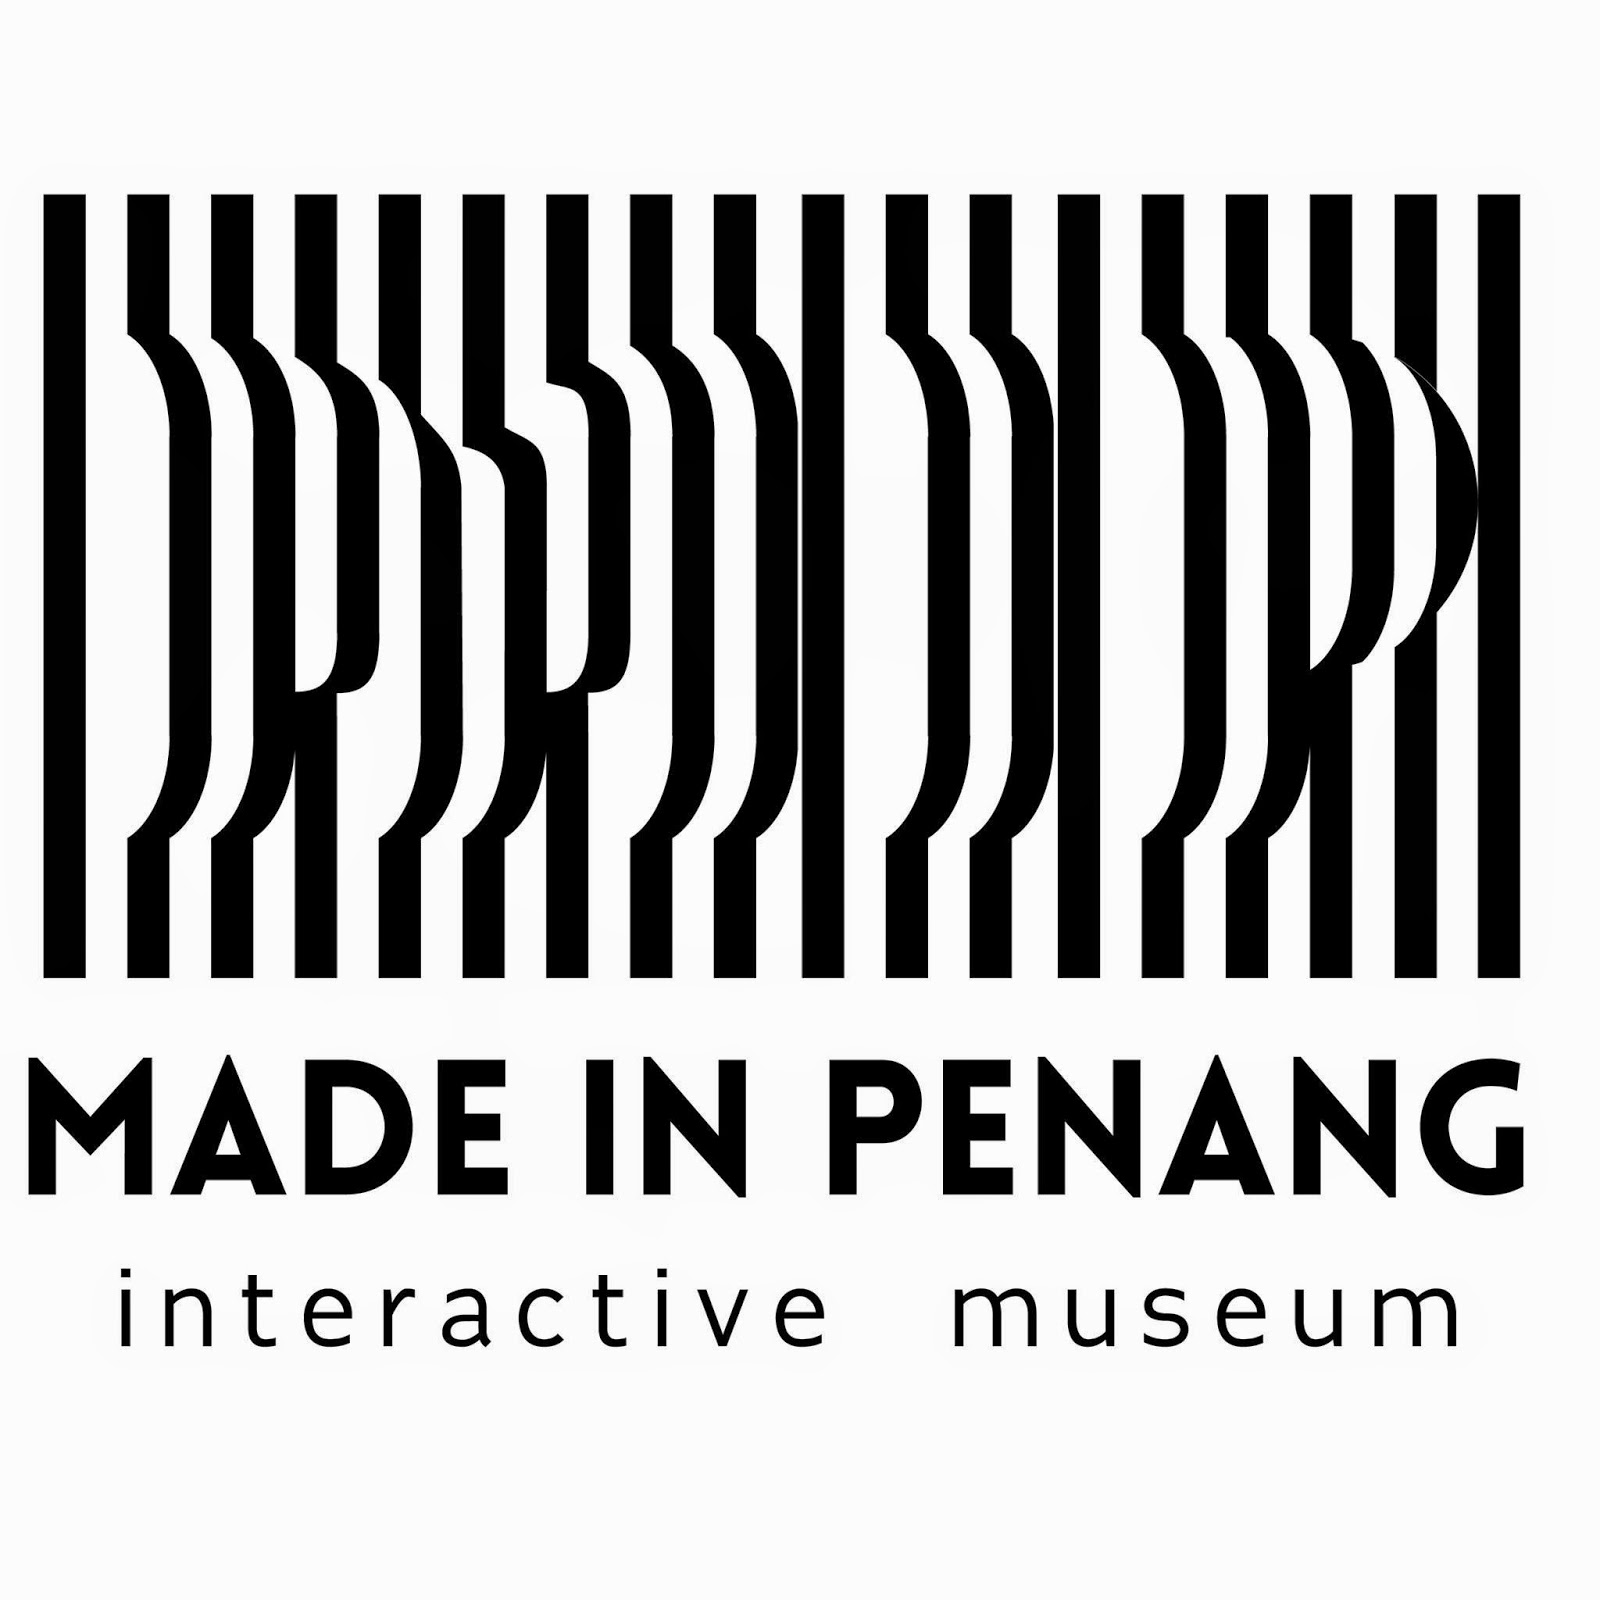 3D Art Made In Penang Interactive Museum Part I